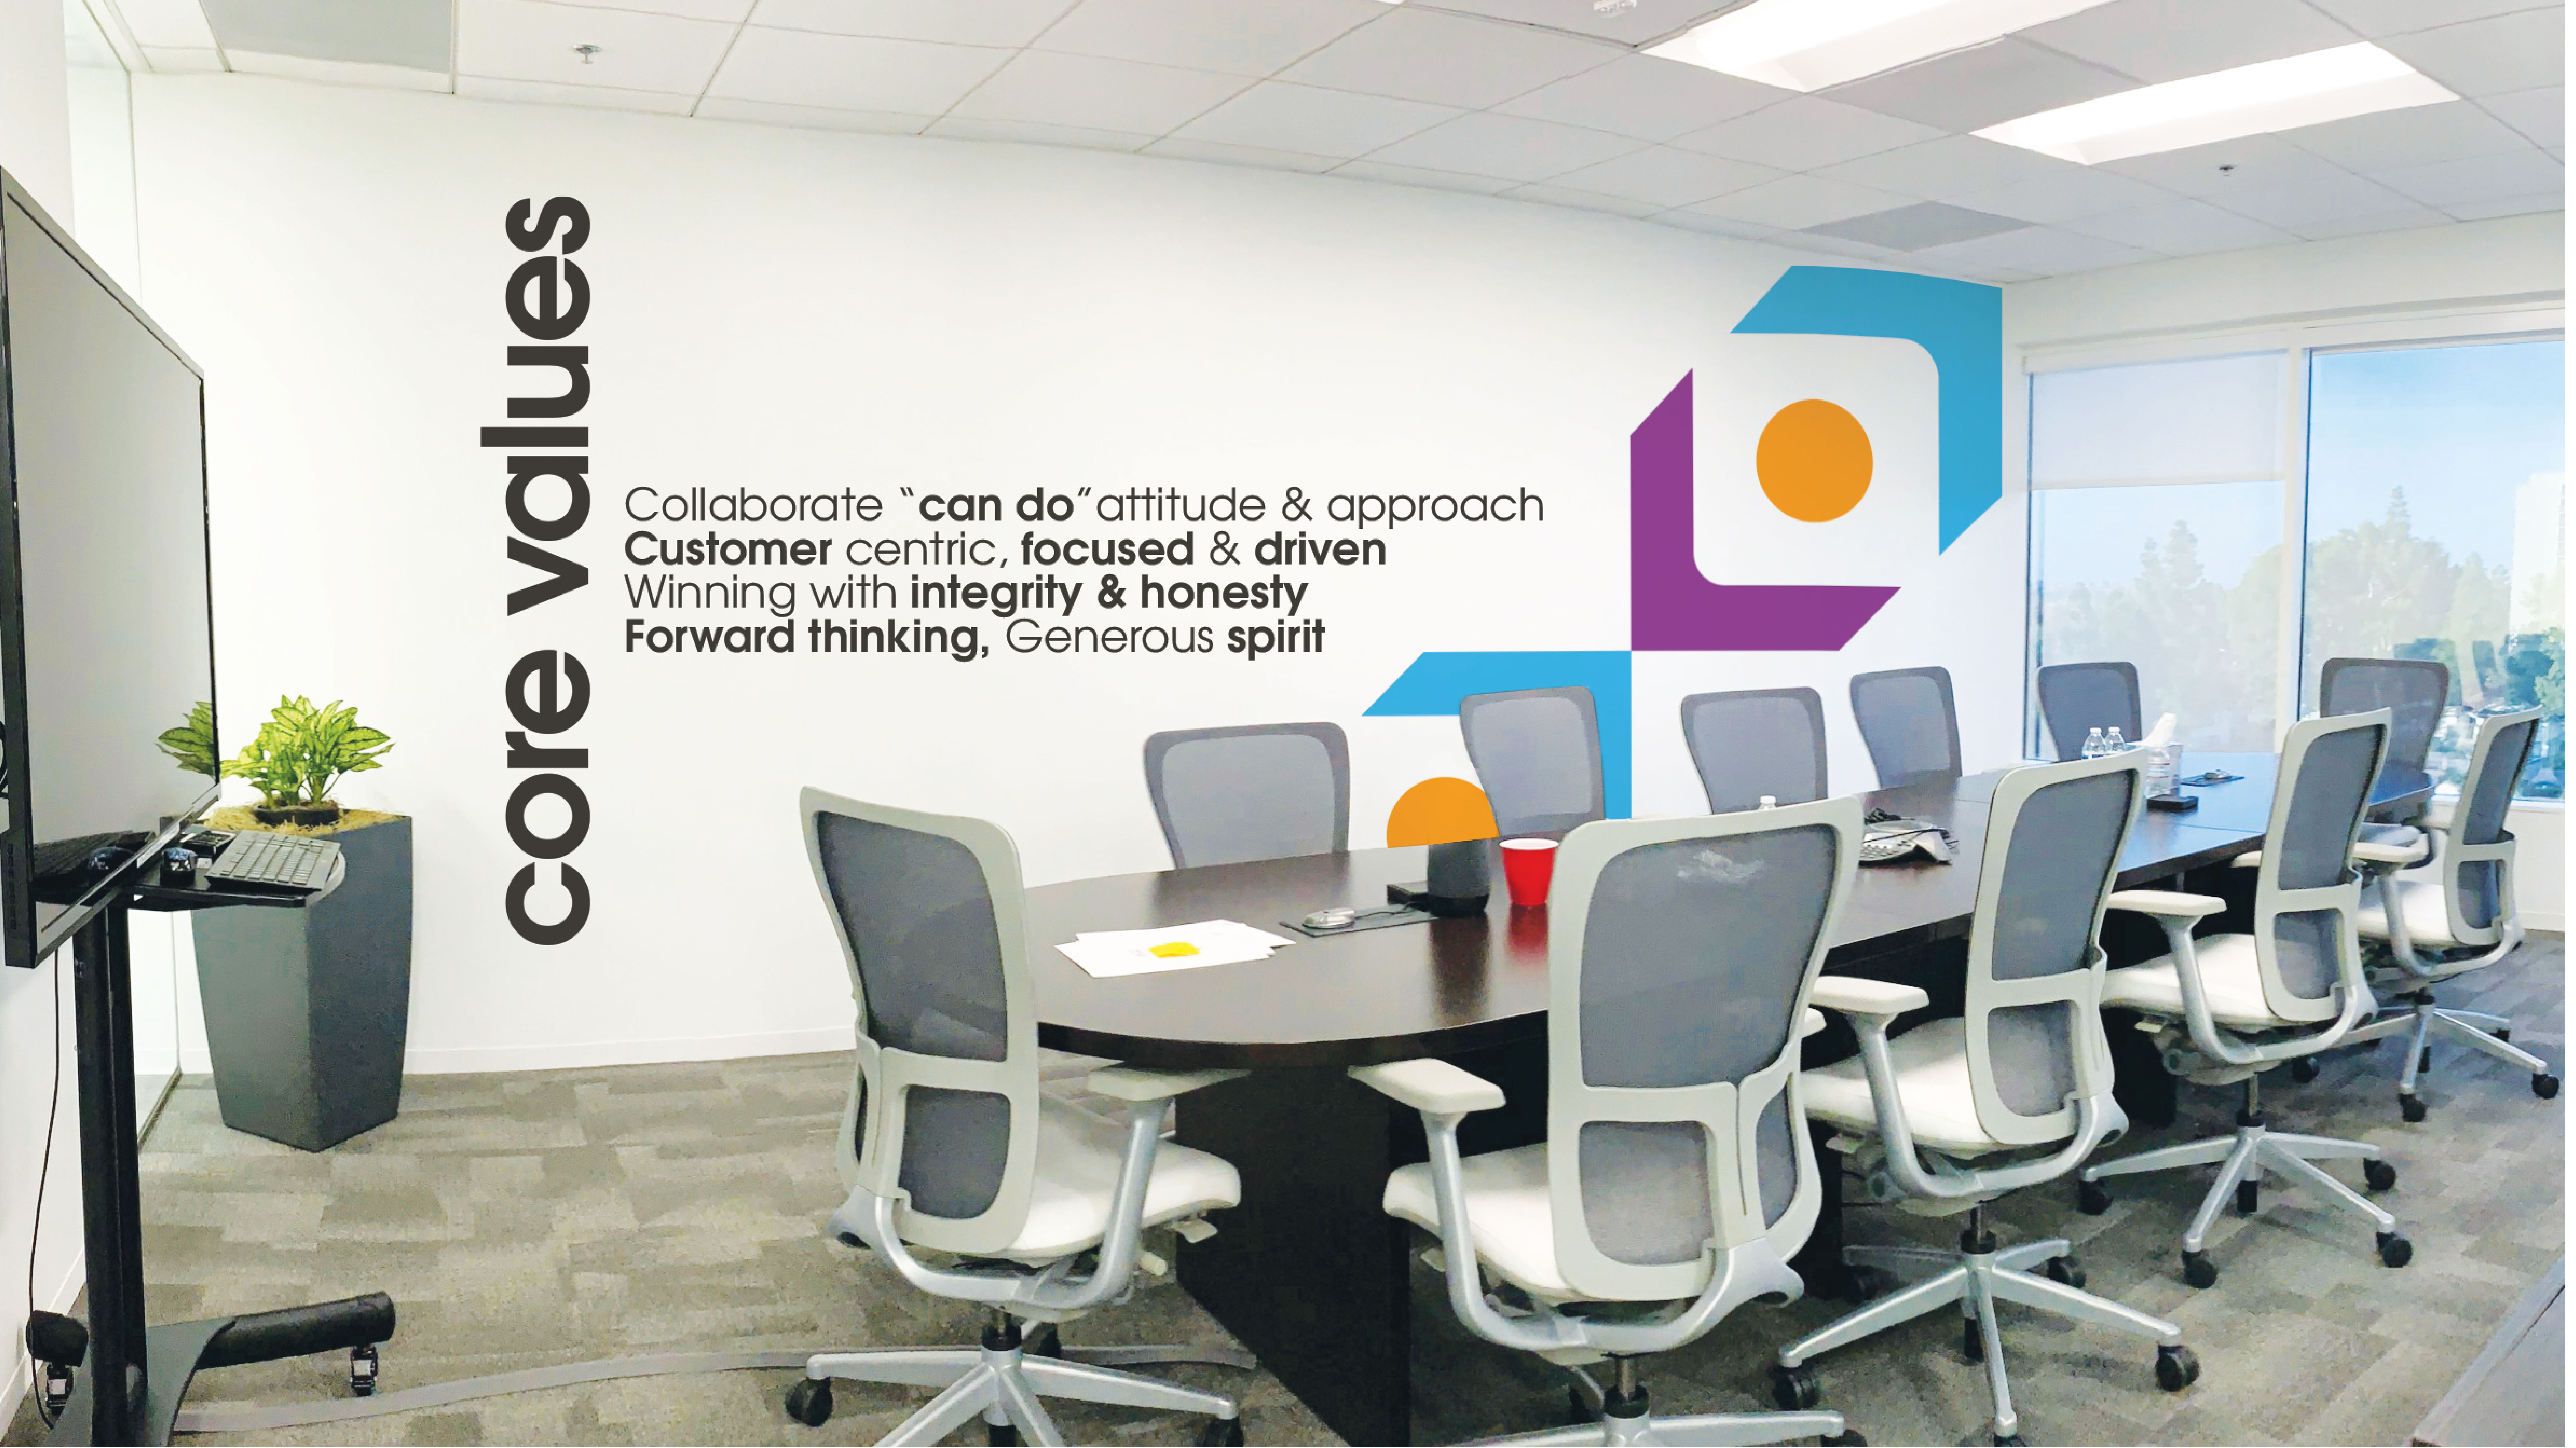 cbt mission statement on wall